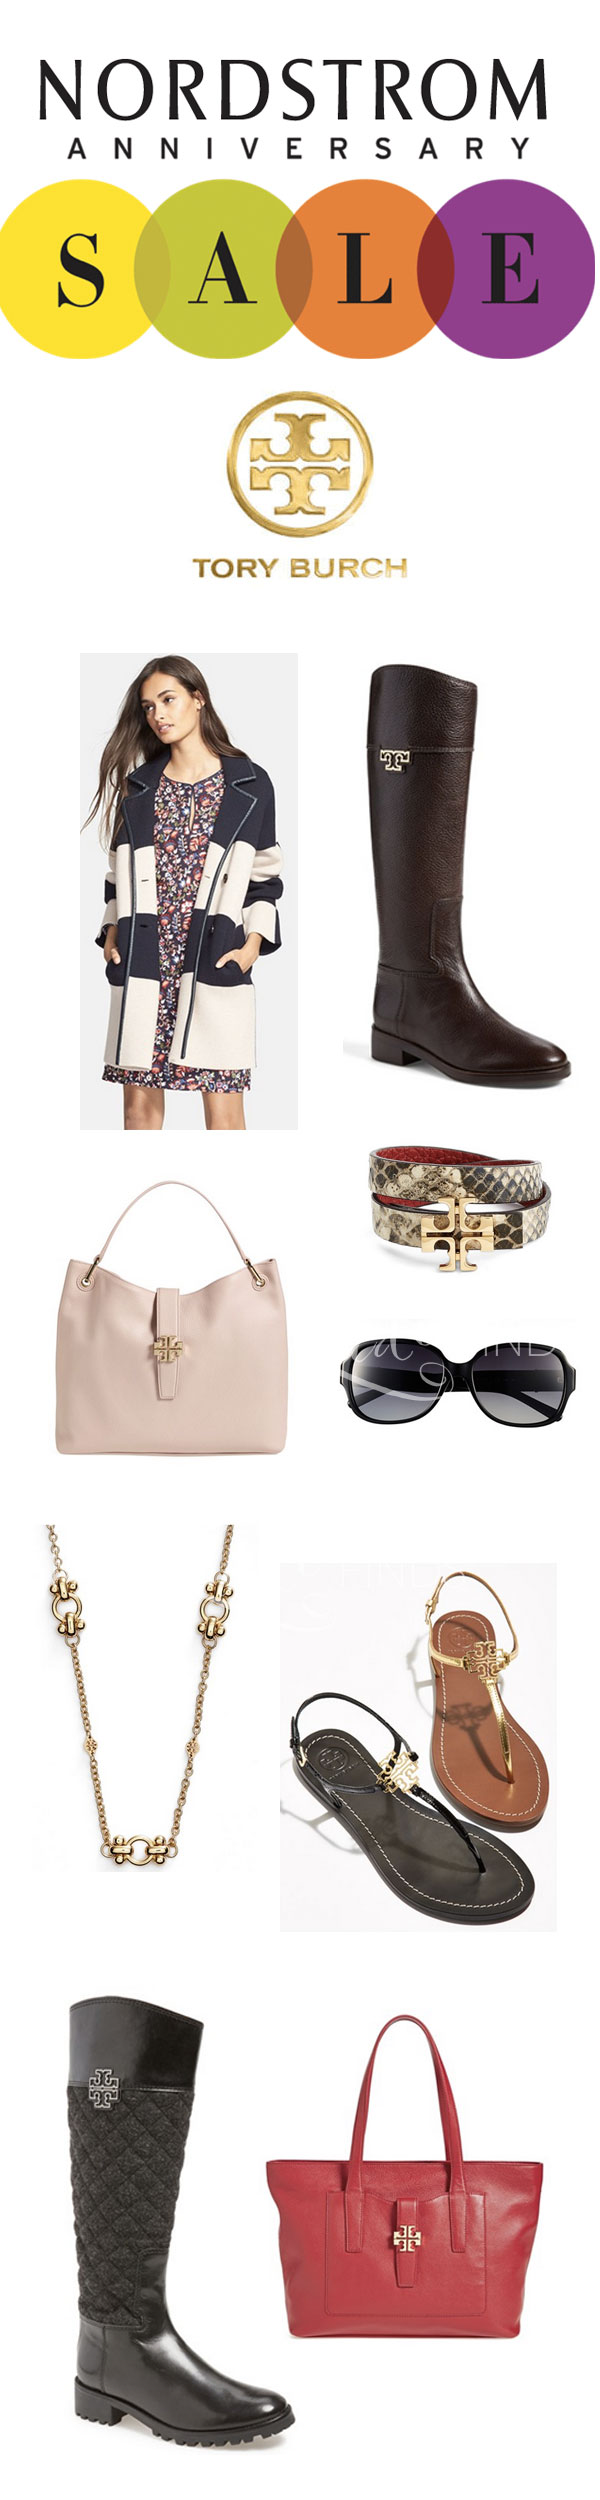 Nordstrom Anniversary Sale Tory Burch